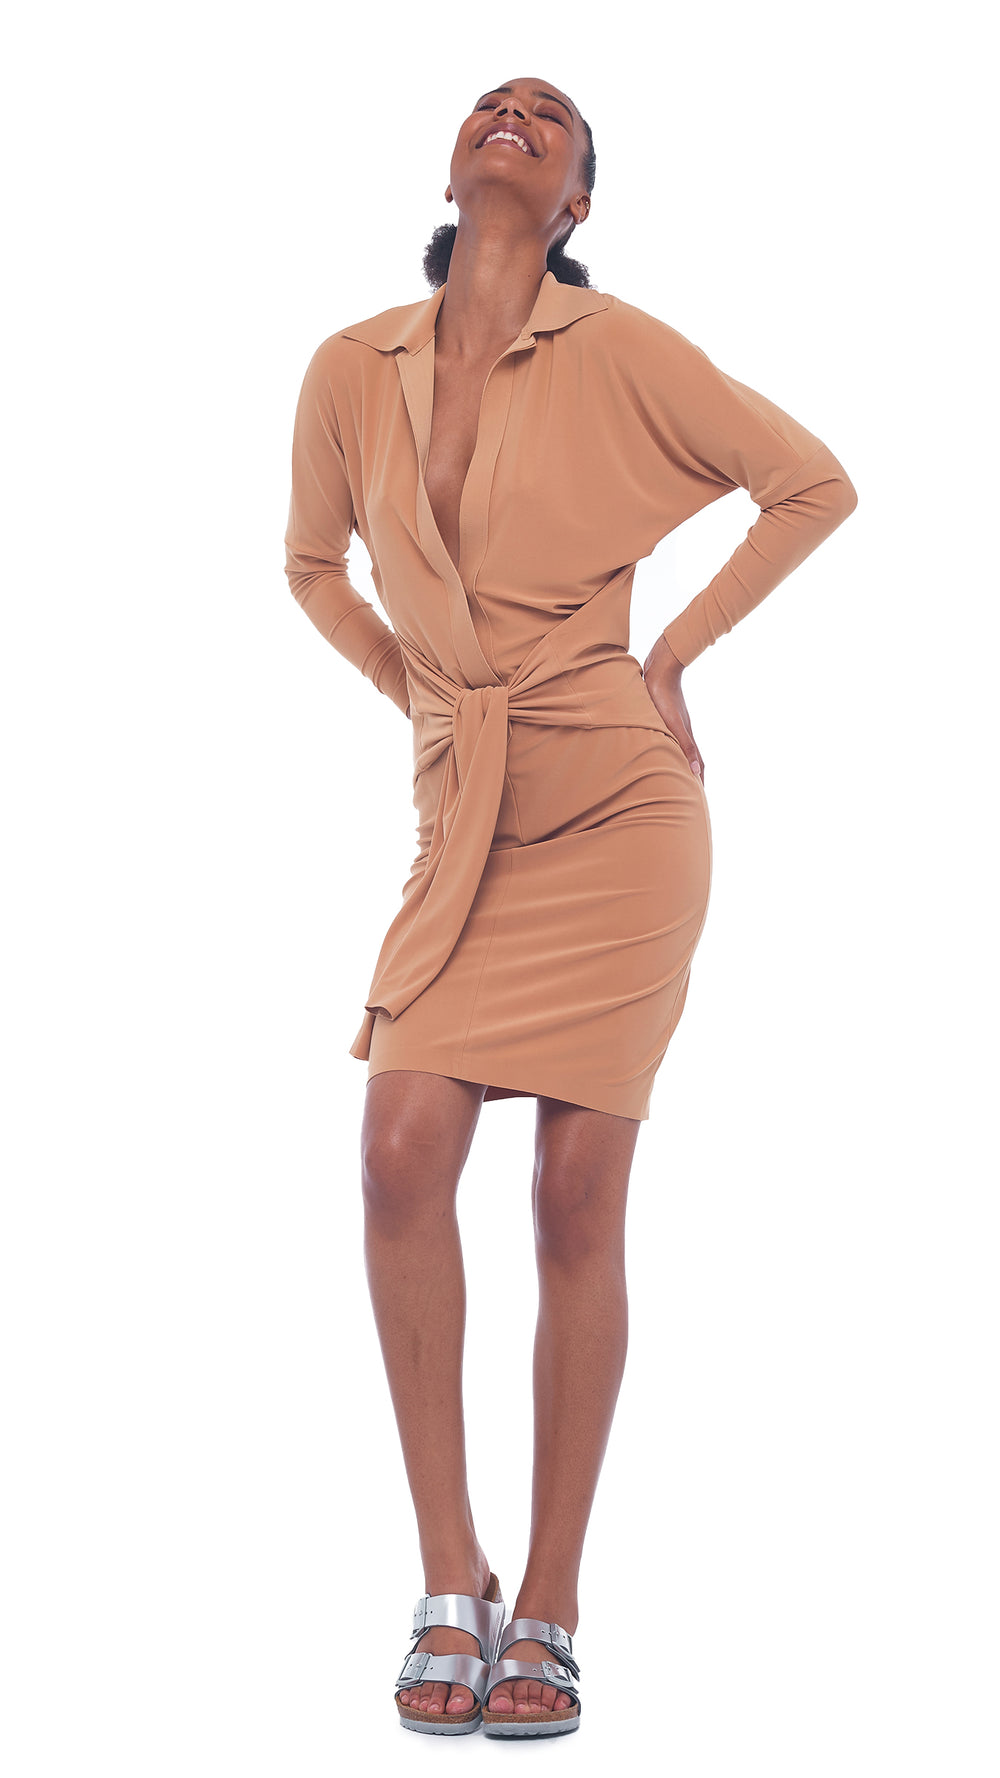 TY FRONT NK SHIRT DRESS TO KNEE